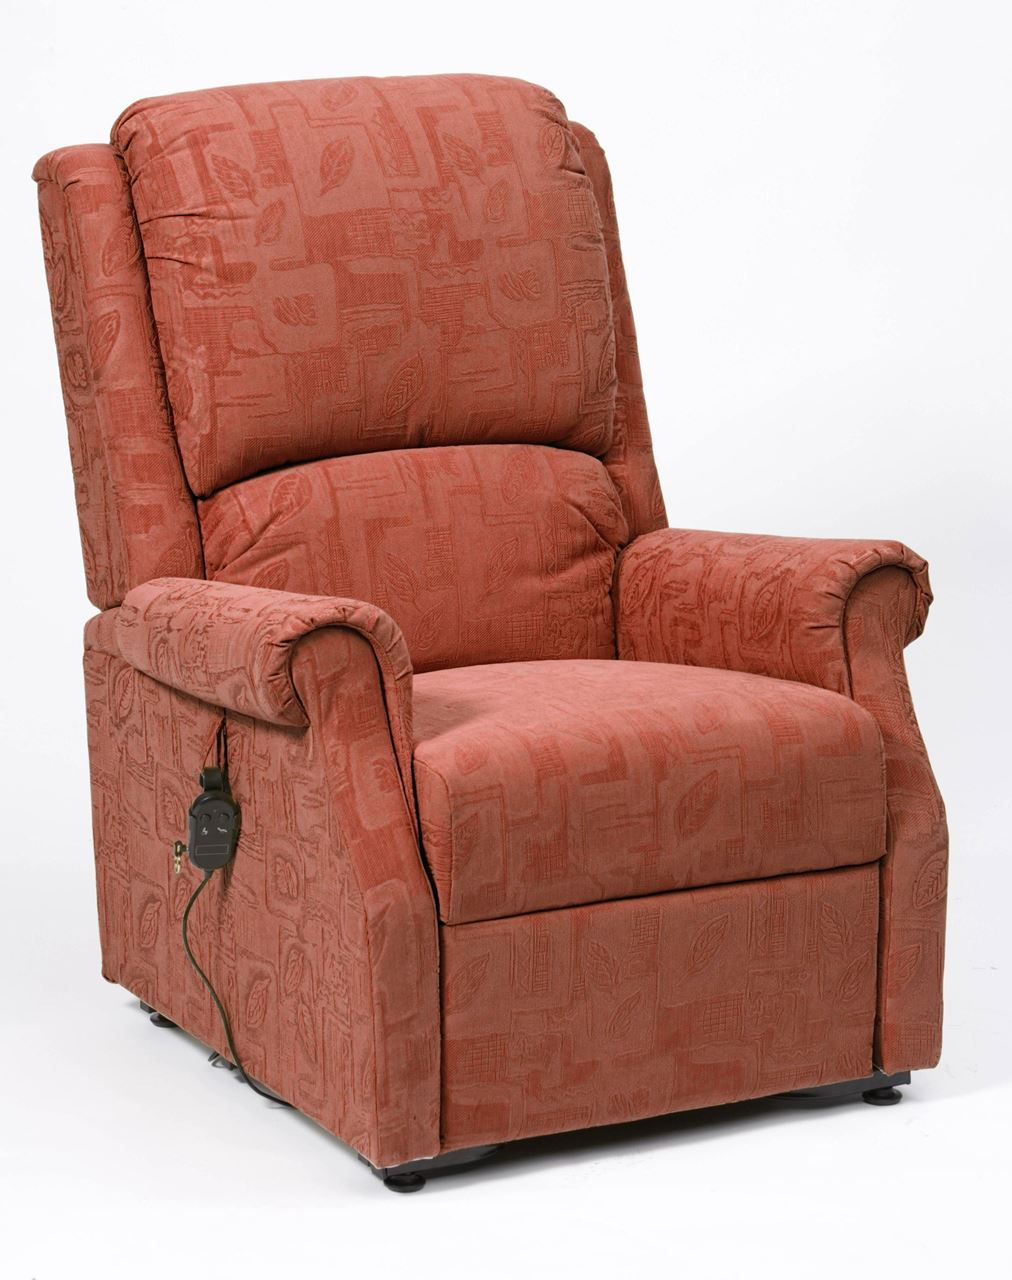 Picture for category Chicago Riser Recliner